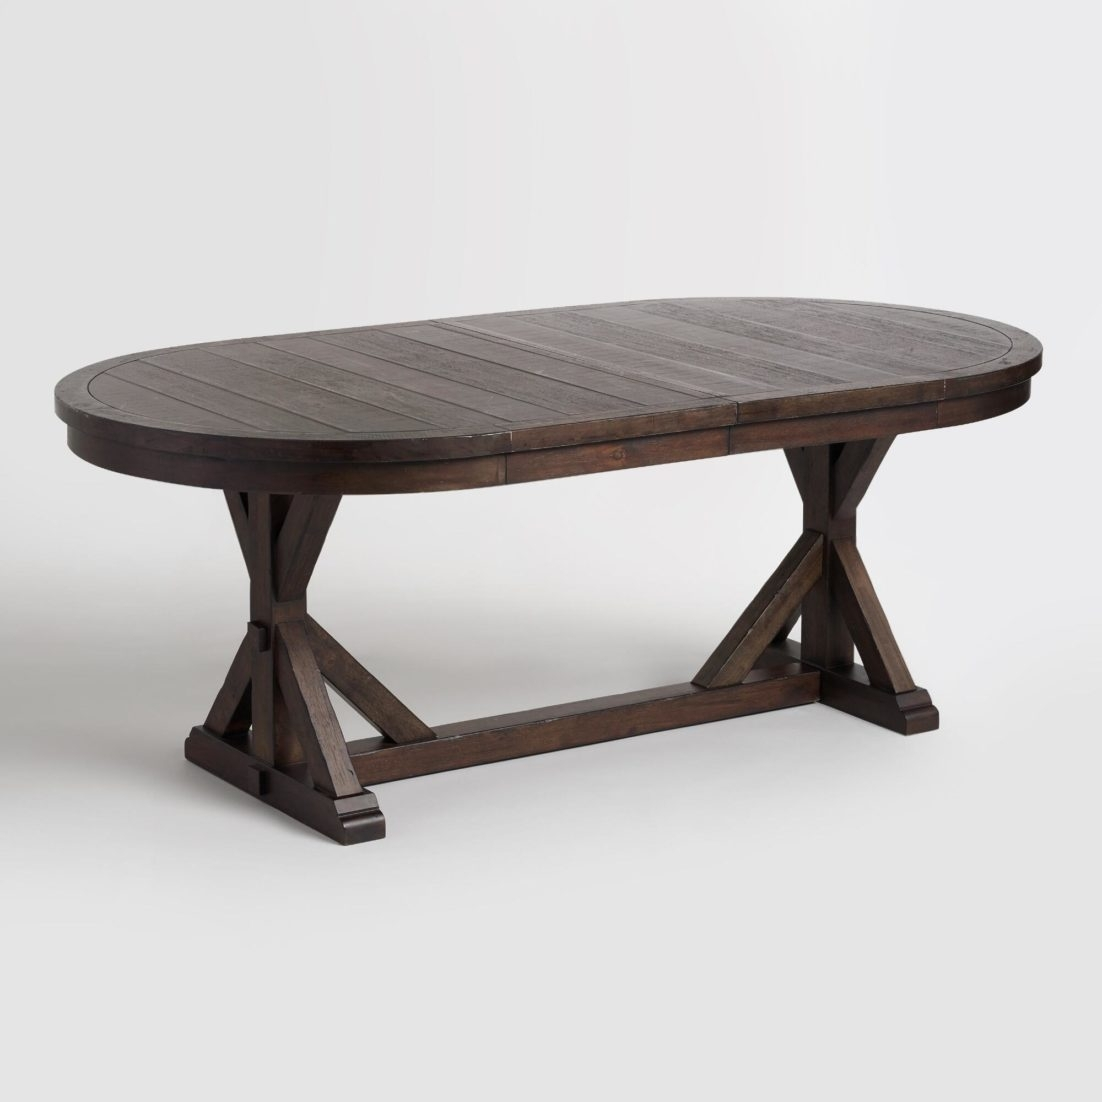 Wood Dining Table Room Tables Rustic Farmhouse Style World Market In Most Up To Date Market Dining Tables (Image 17 of 20)